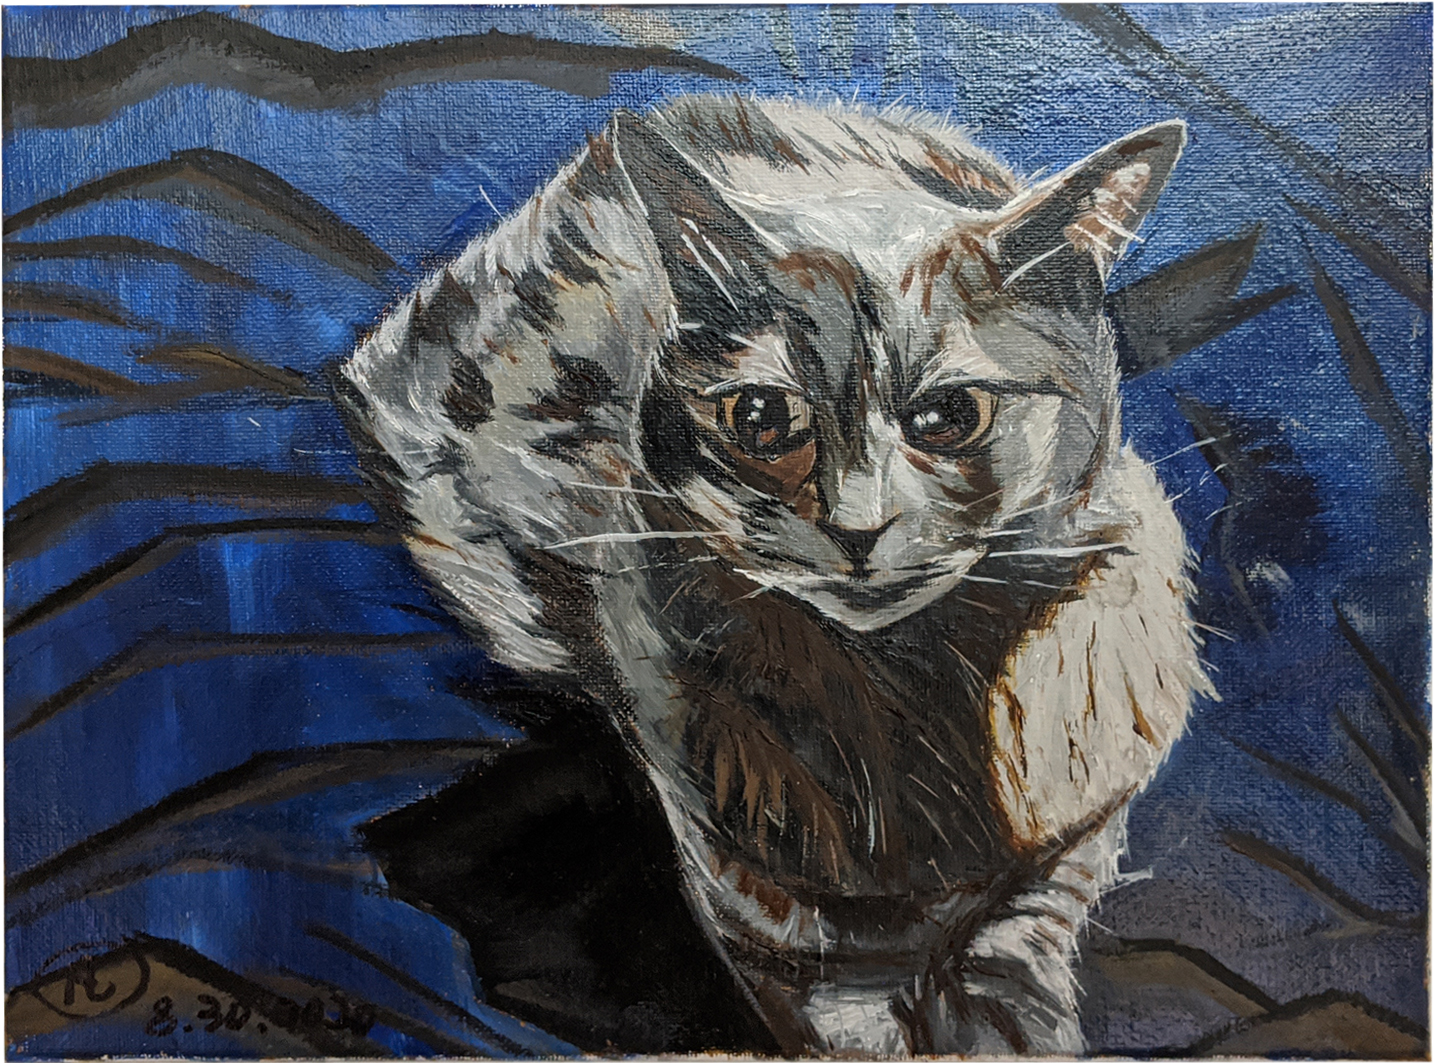 Xiao Kitty Oil painting canvas size 11″ x 15.5″